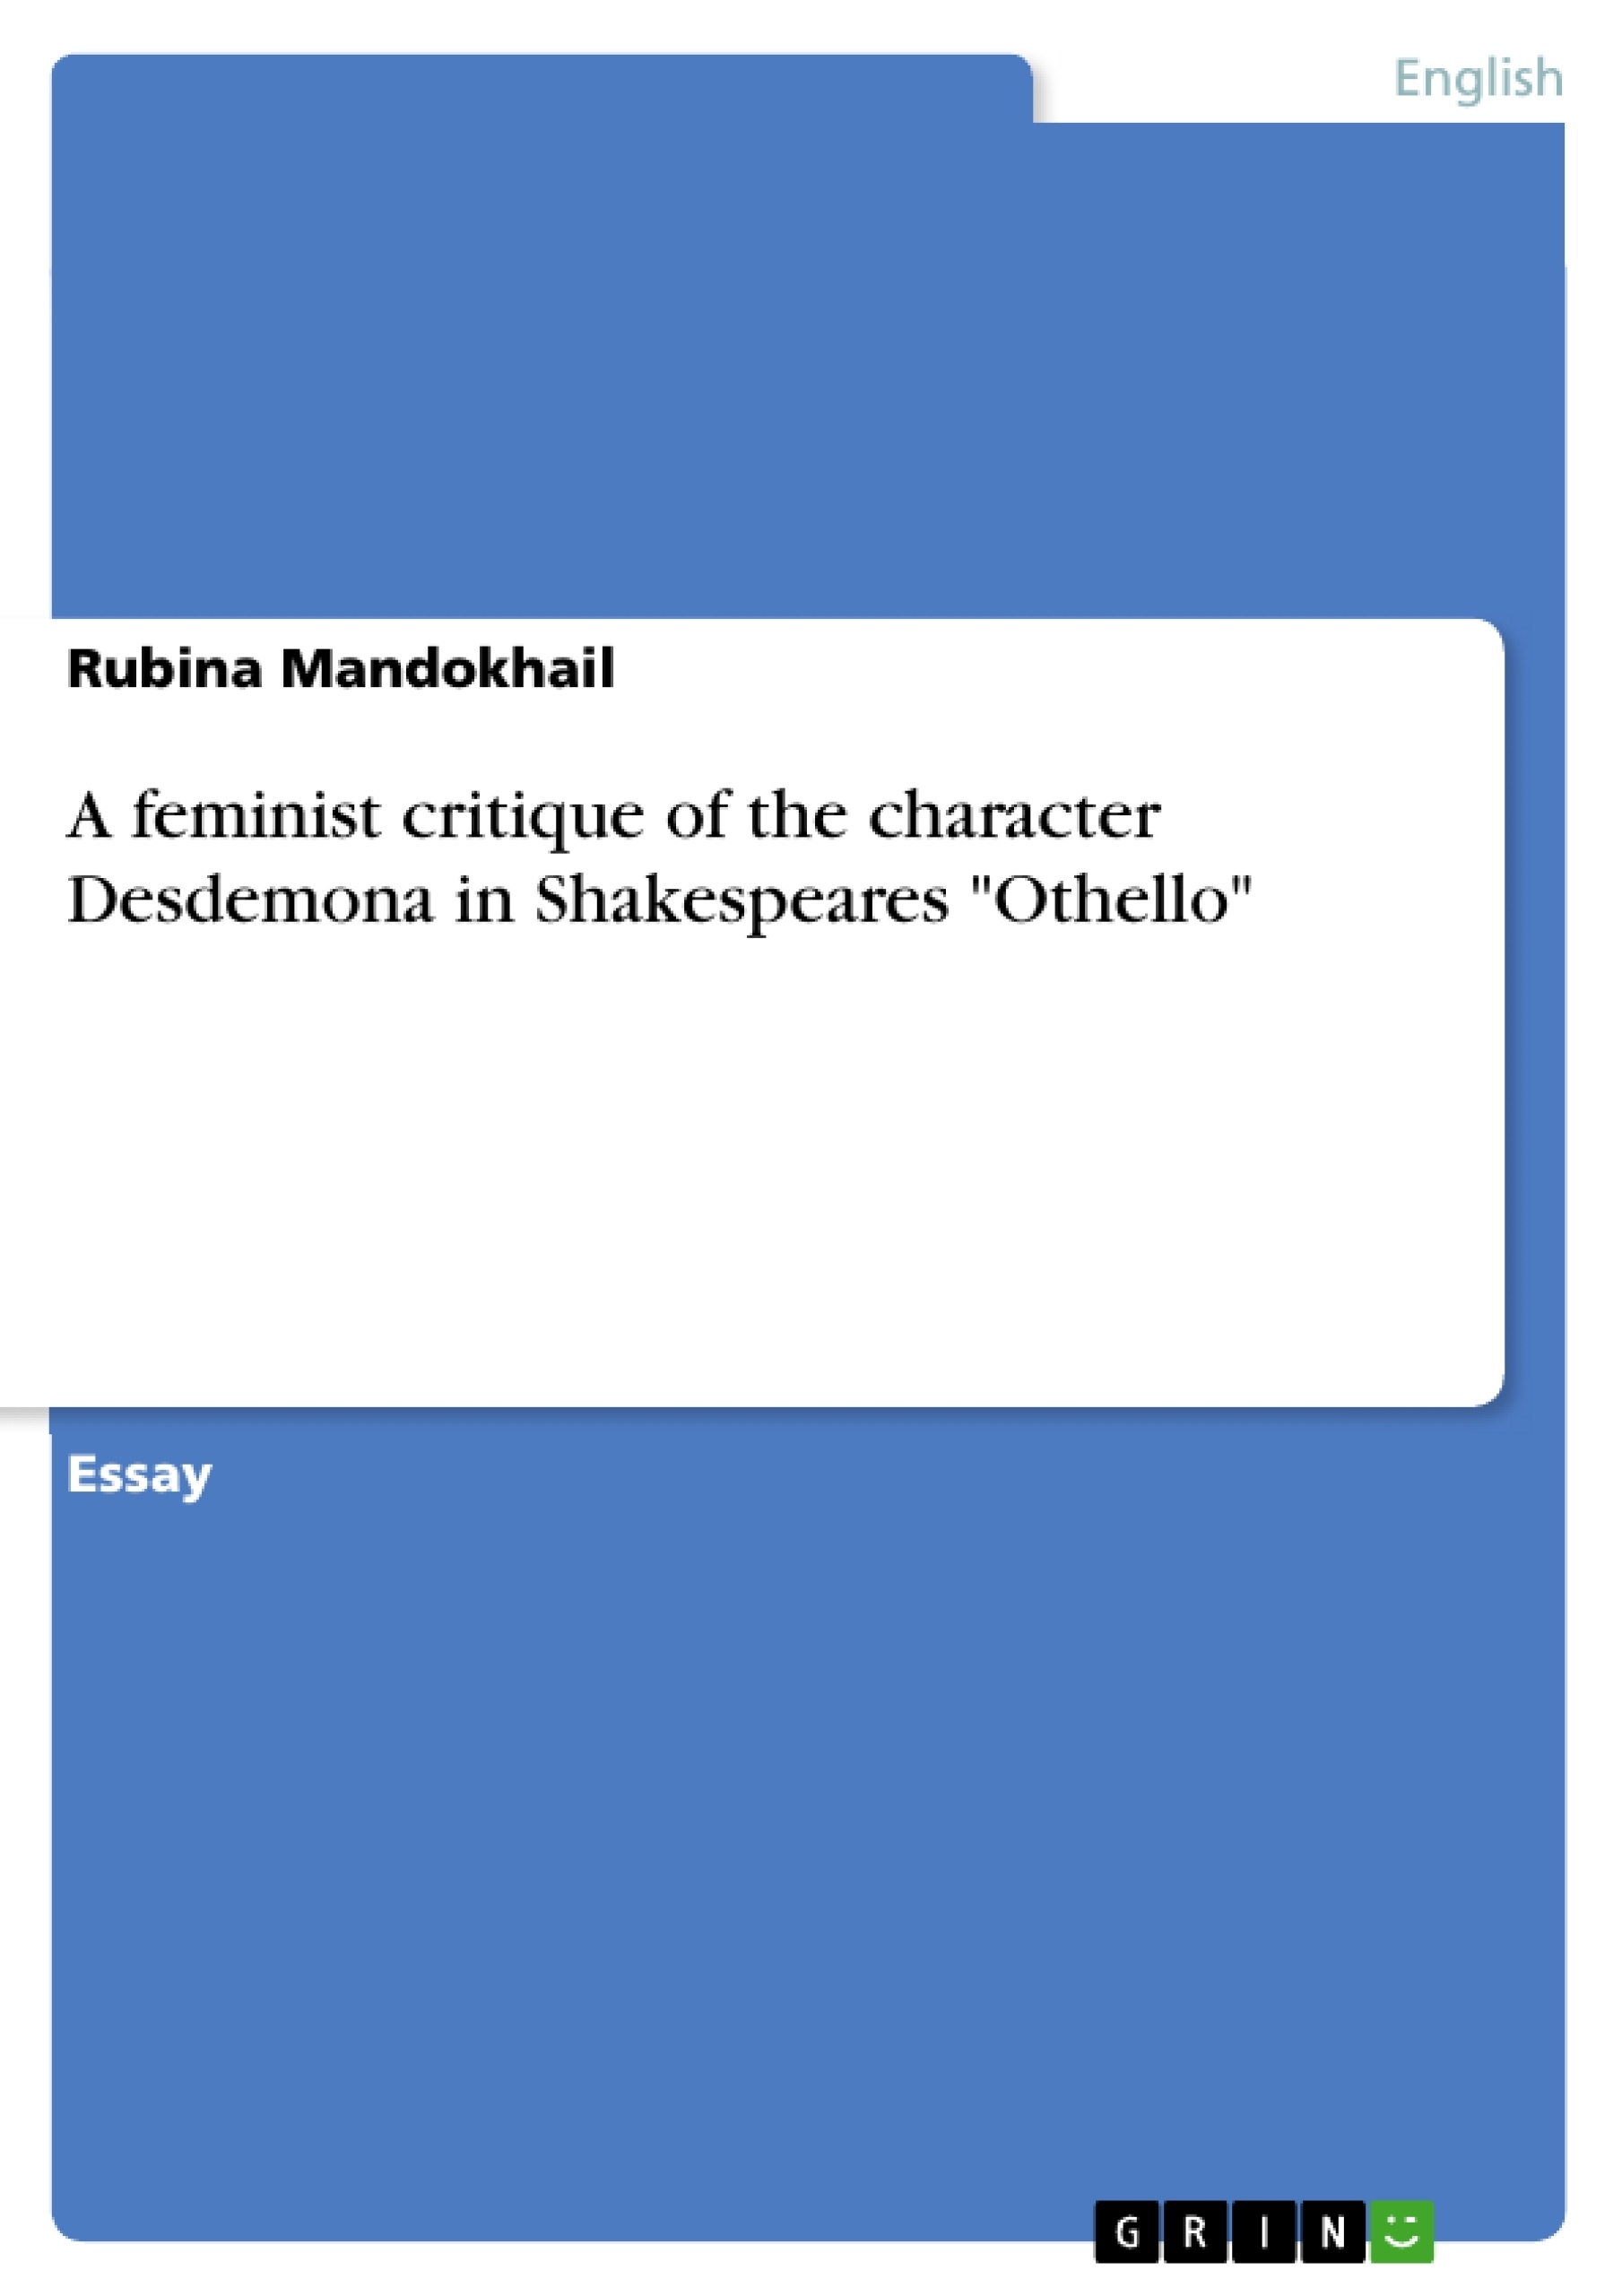 othello critical essays othello quotes to use in essays chereese  a feminist critique of the character desdemona in shakespeares a feminist critique of the character desdemona othello coursework questions